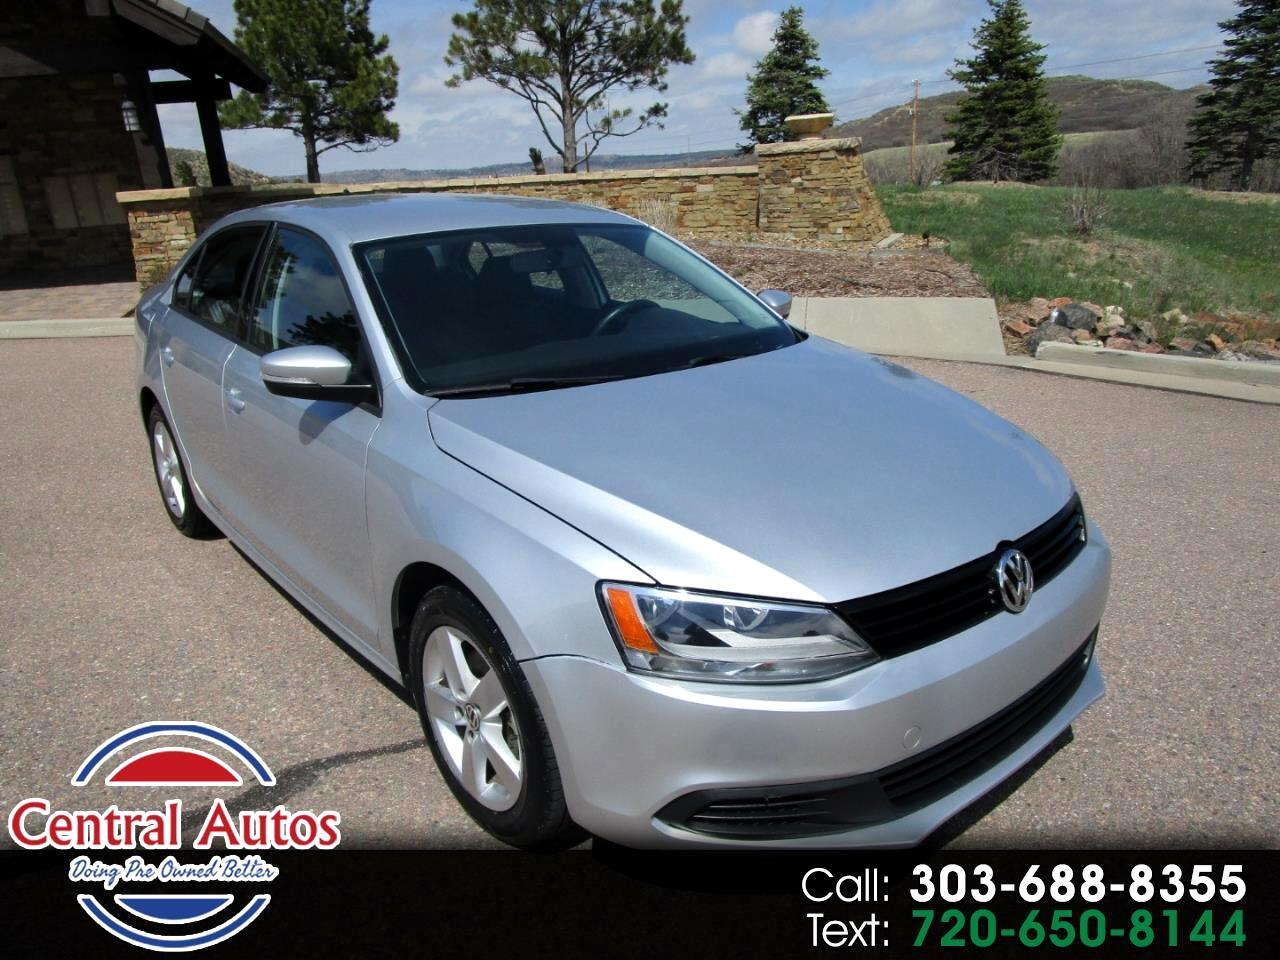 2012 Volkswagen Jetta Sedan 4dr Manual TDI